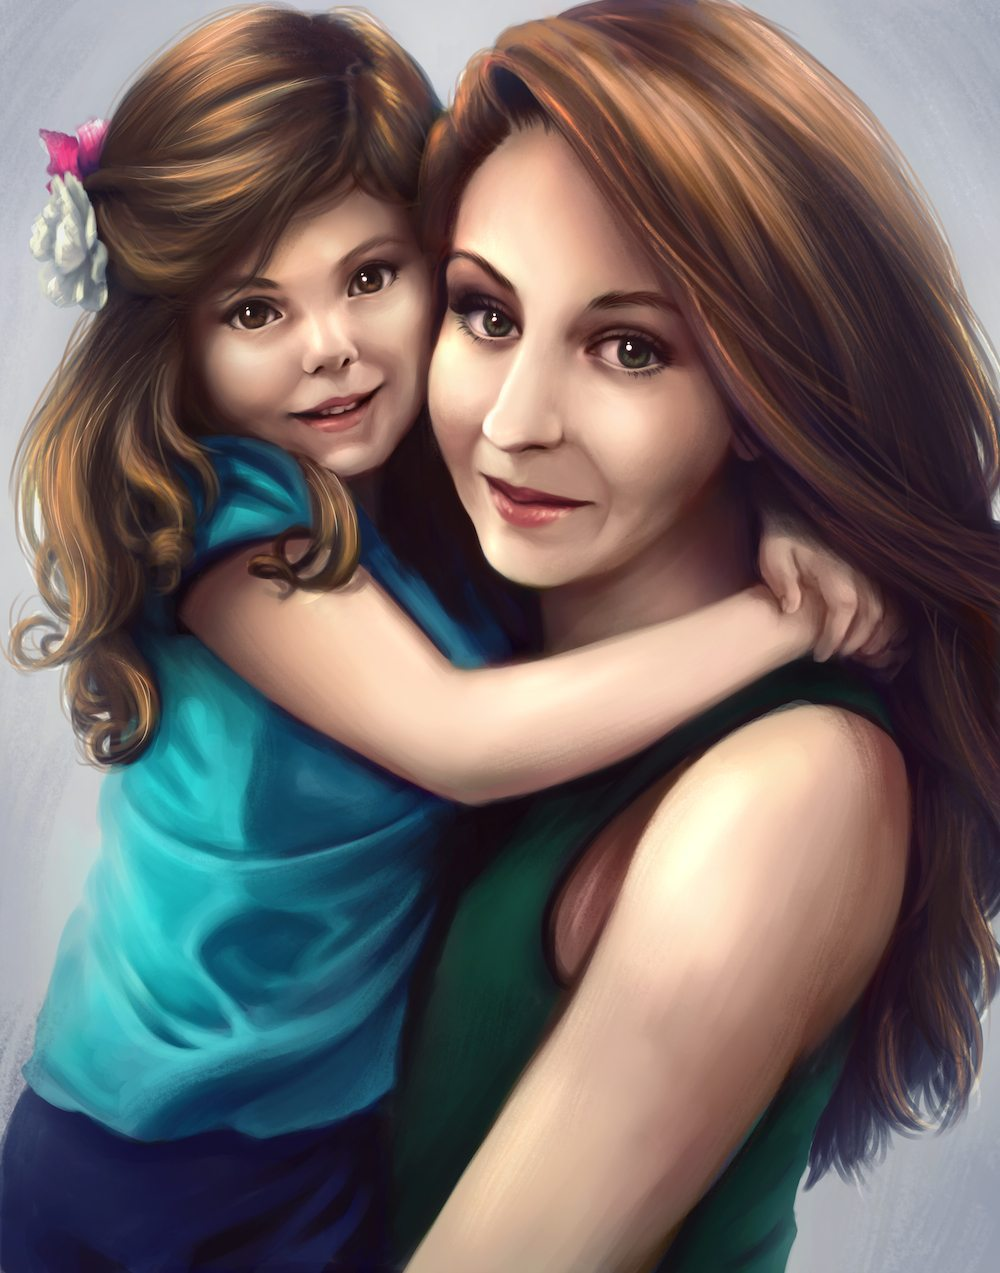 Mother Daughter Portrait by Shobey1kanoby via ArtCorgi